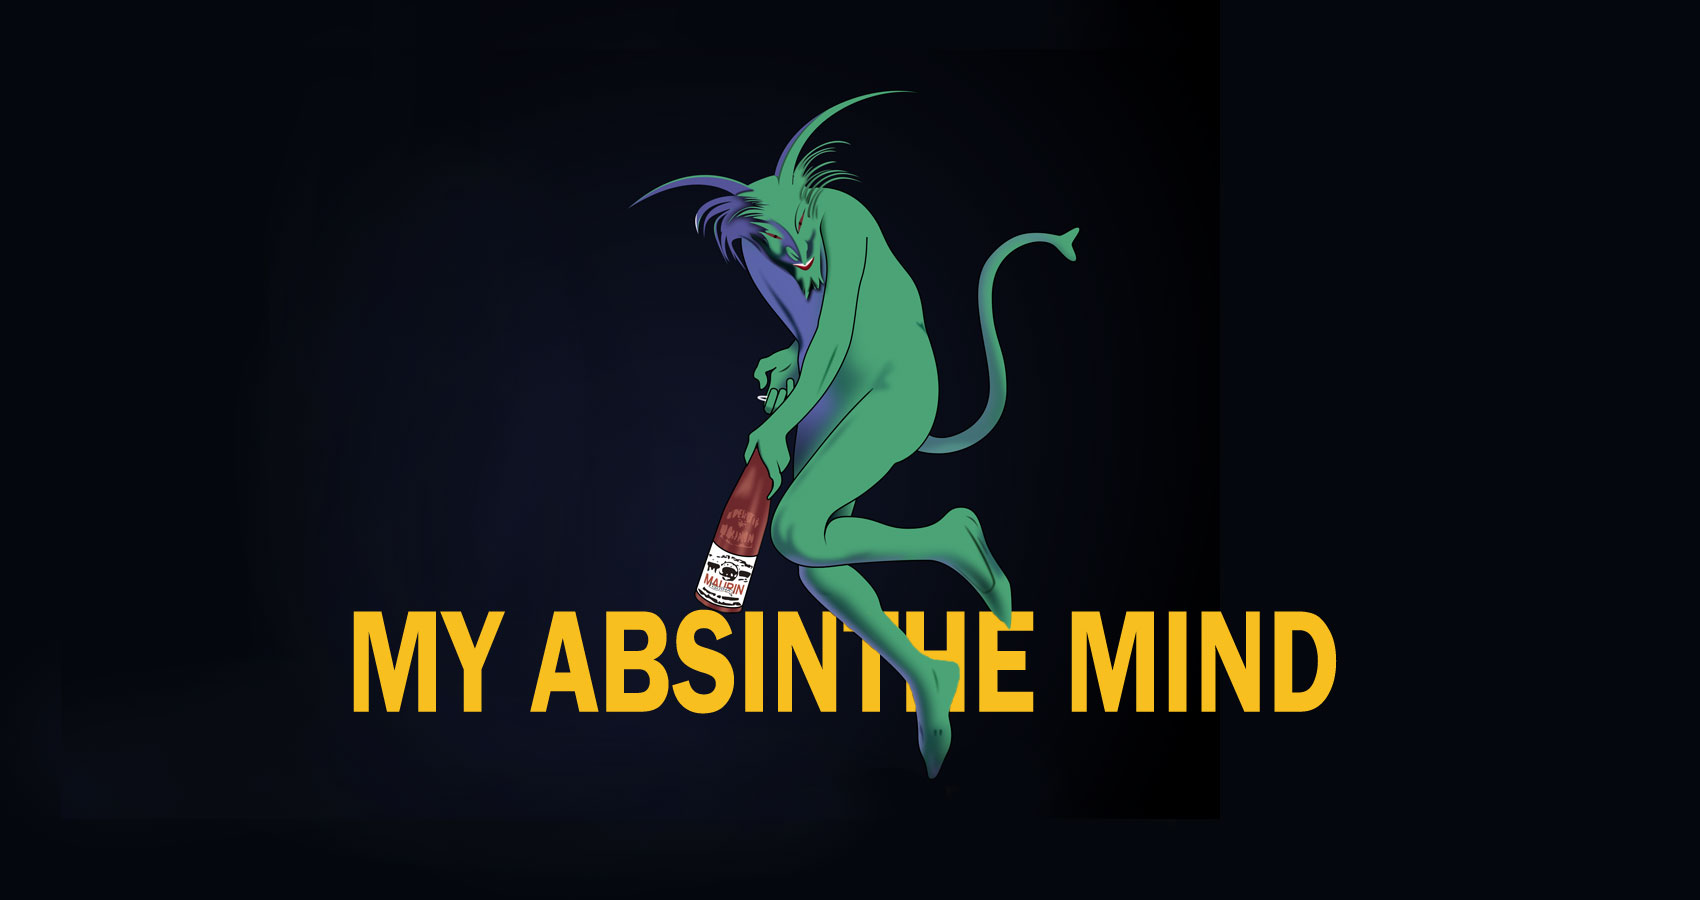 My Absinthe Mind written by Nicole Cheng at Spillwords.com